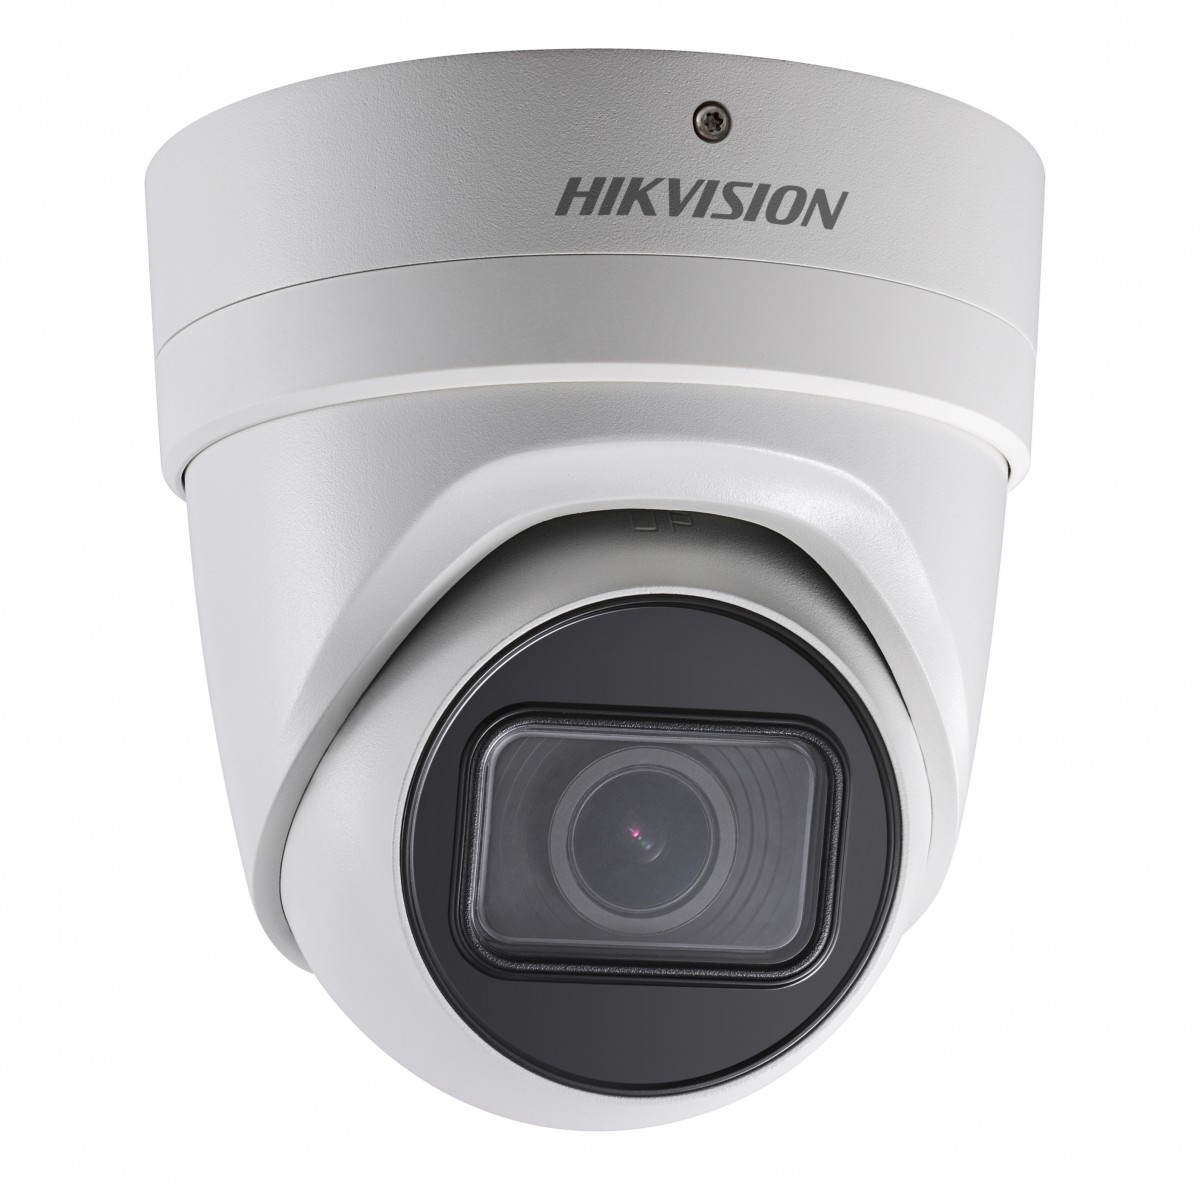 Picture of DS-2CD2H63G0-IZS (B) 2.8-12mm 6MP IR Varifocal IP Dome Cam